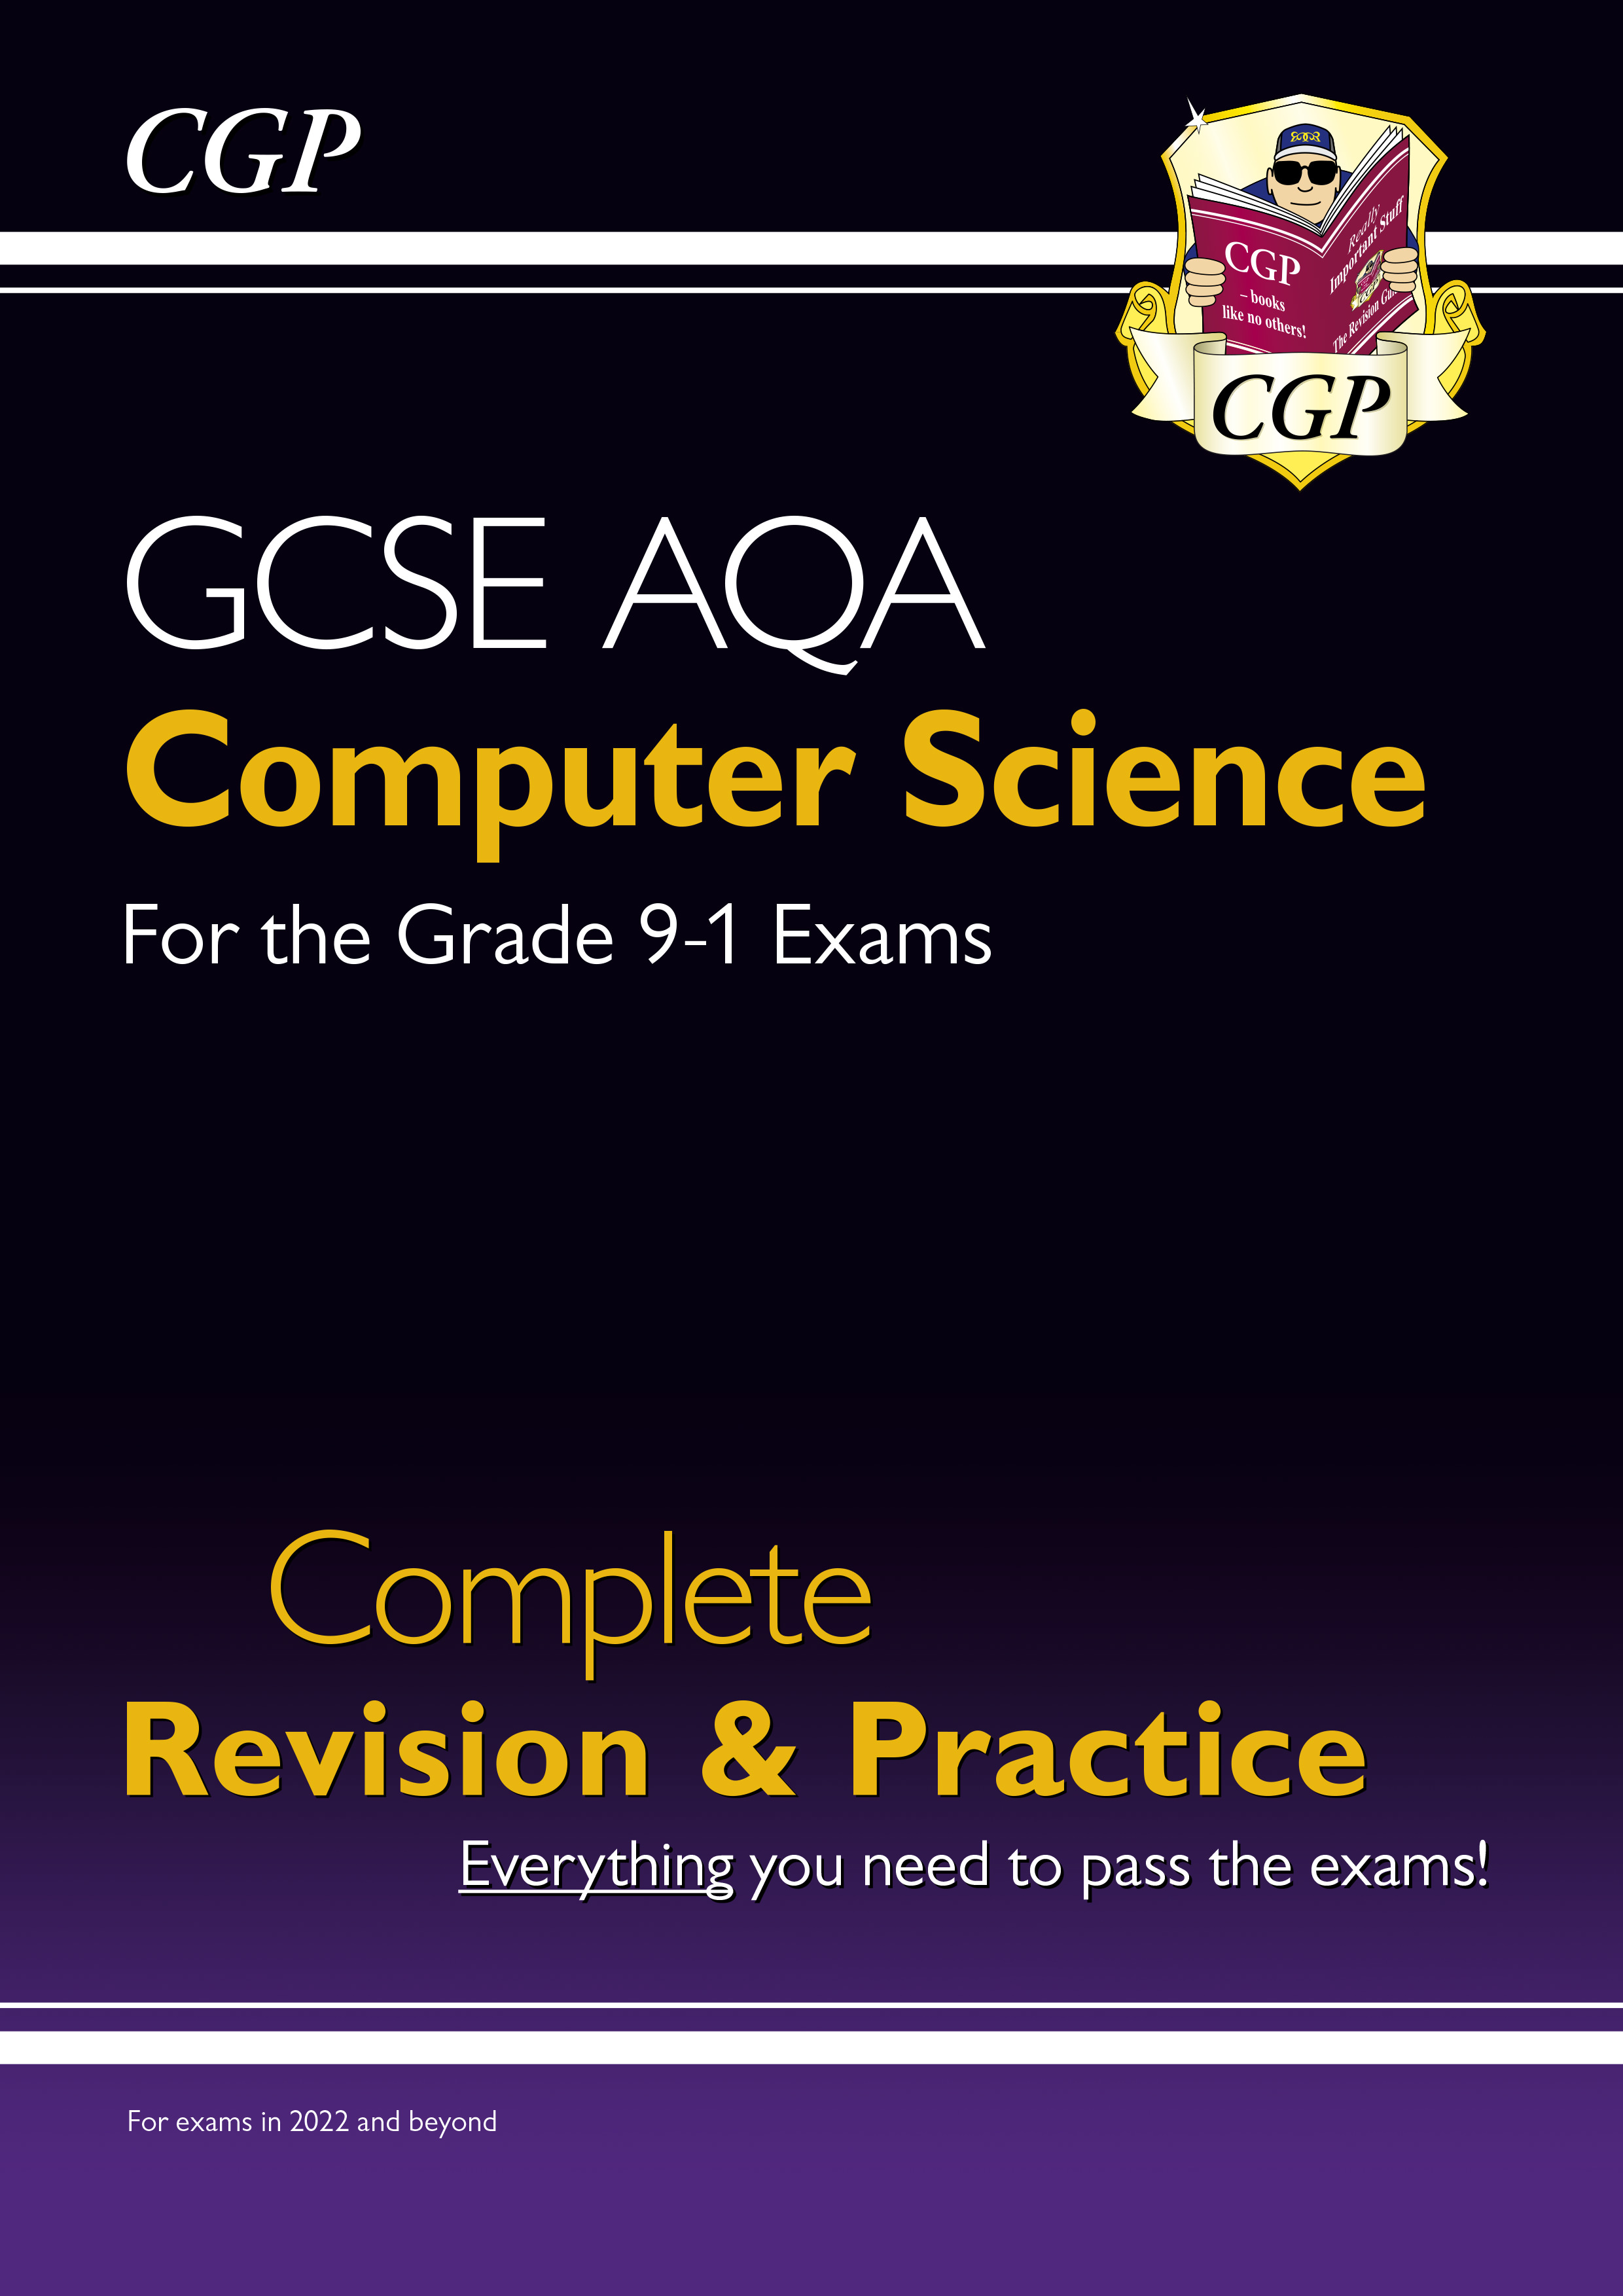 COAS42D - New GCSE Computer Science AQA Complete Revision & Practice - for exams in 2022 and beyond